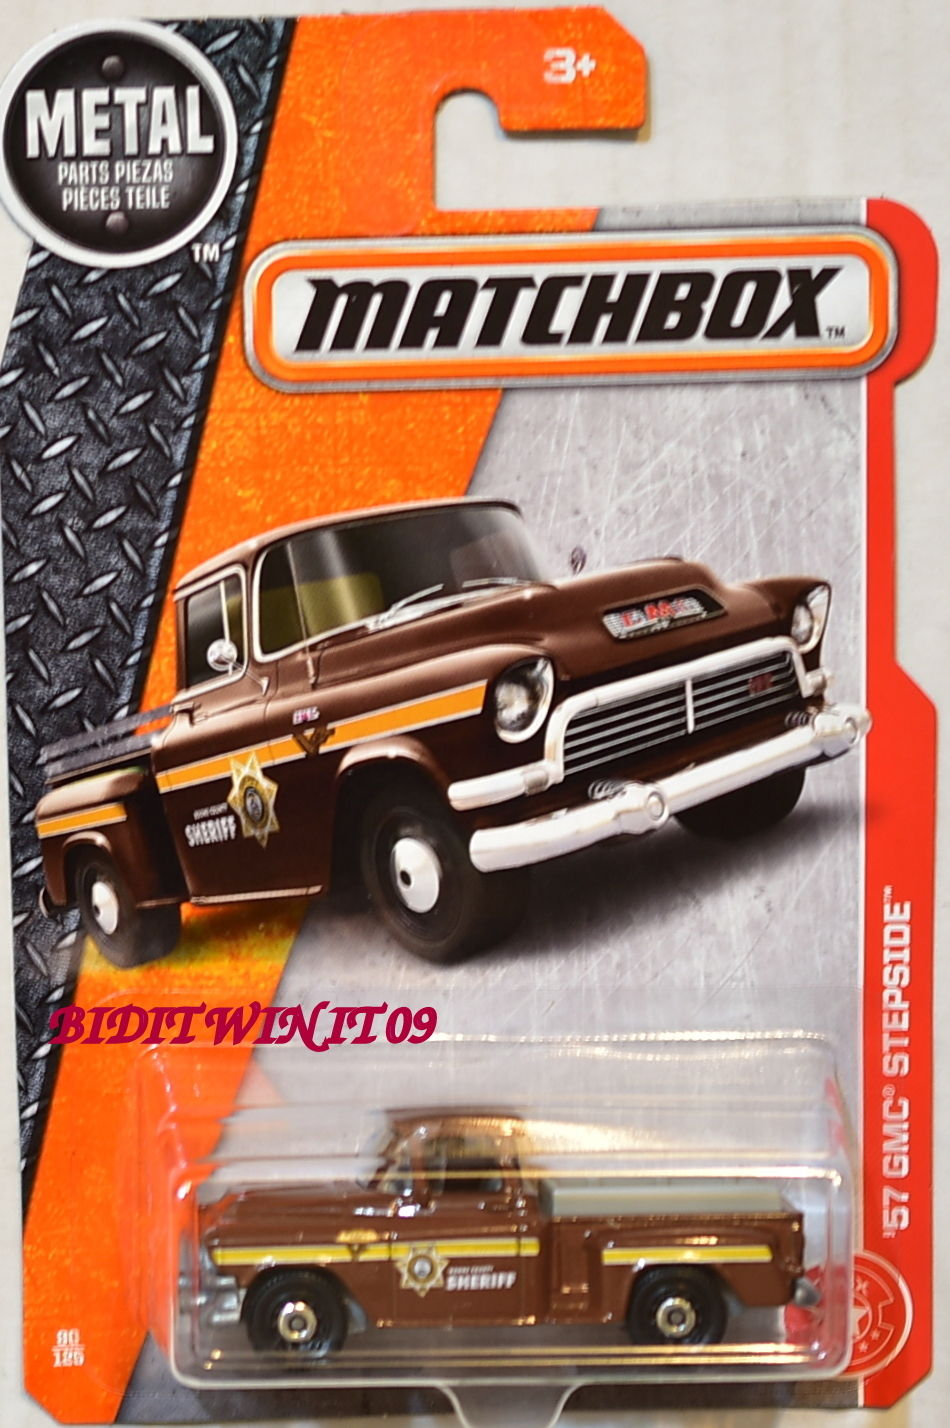 MATCHBOX 2017 METAL PARTS PIEZAS '57 GMC STEPSIDE E+